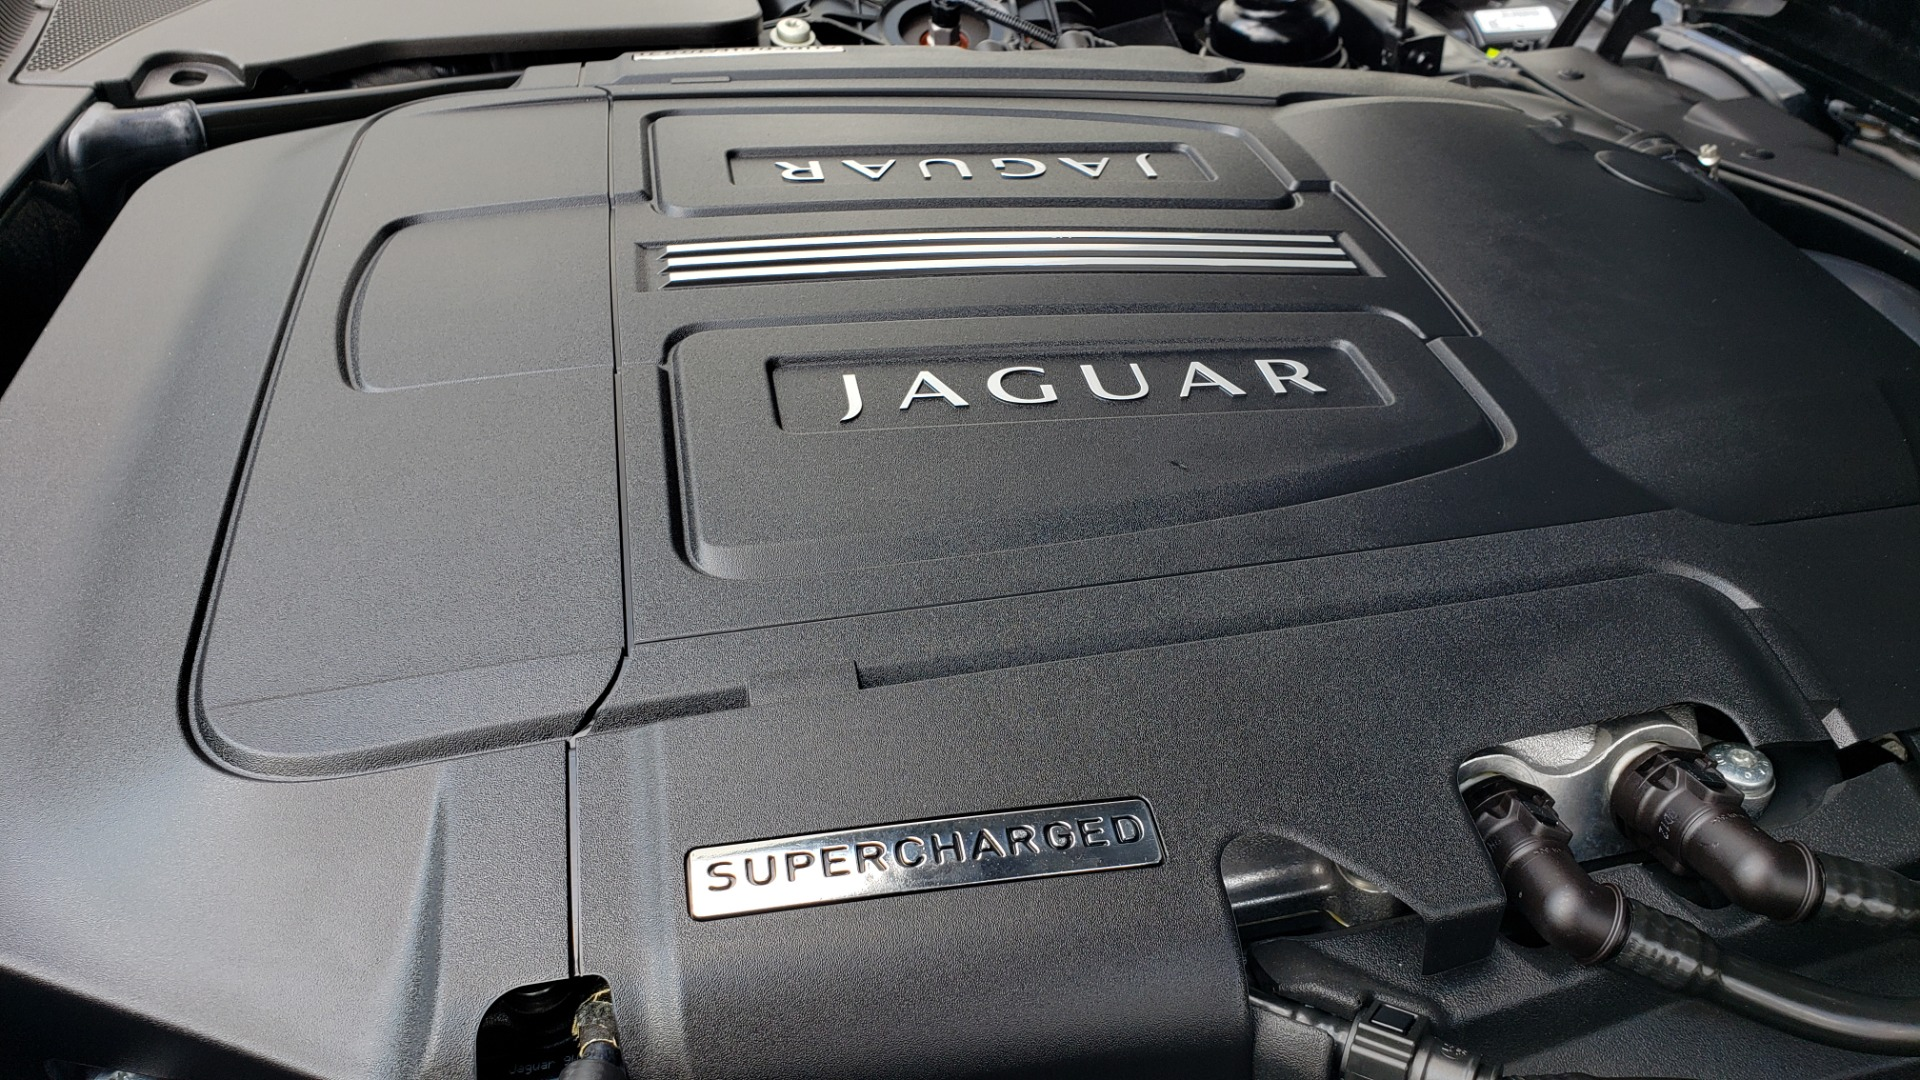 Used 2013 Jaguar XK R-S CONVERTIBLE / SC 5.0L V8 (550HP) / ZF 6-SPD AUTO / NAV / REARVIEW for sale $74,995 at Formula Imports in Charlotte NC 28227 27